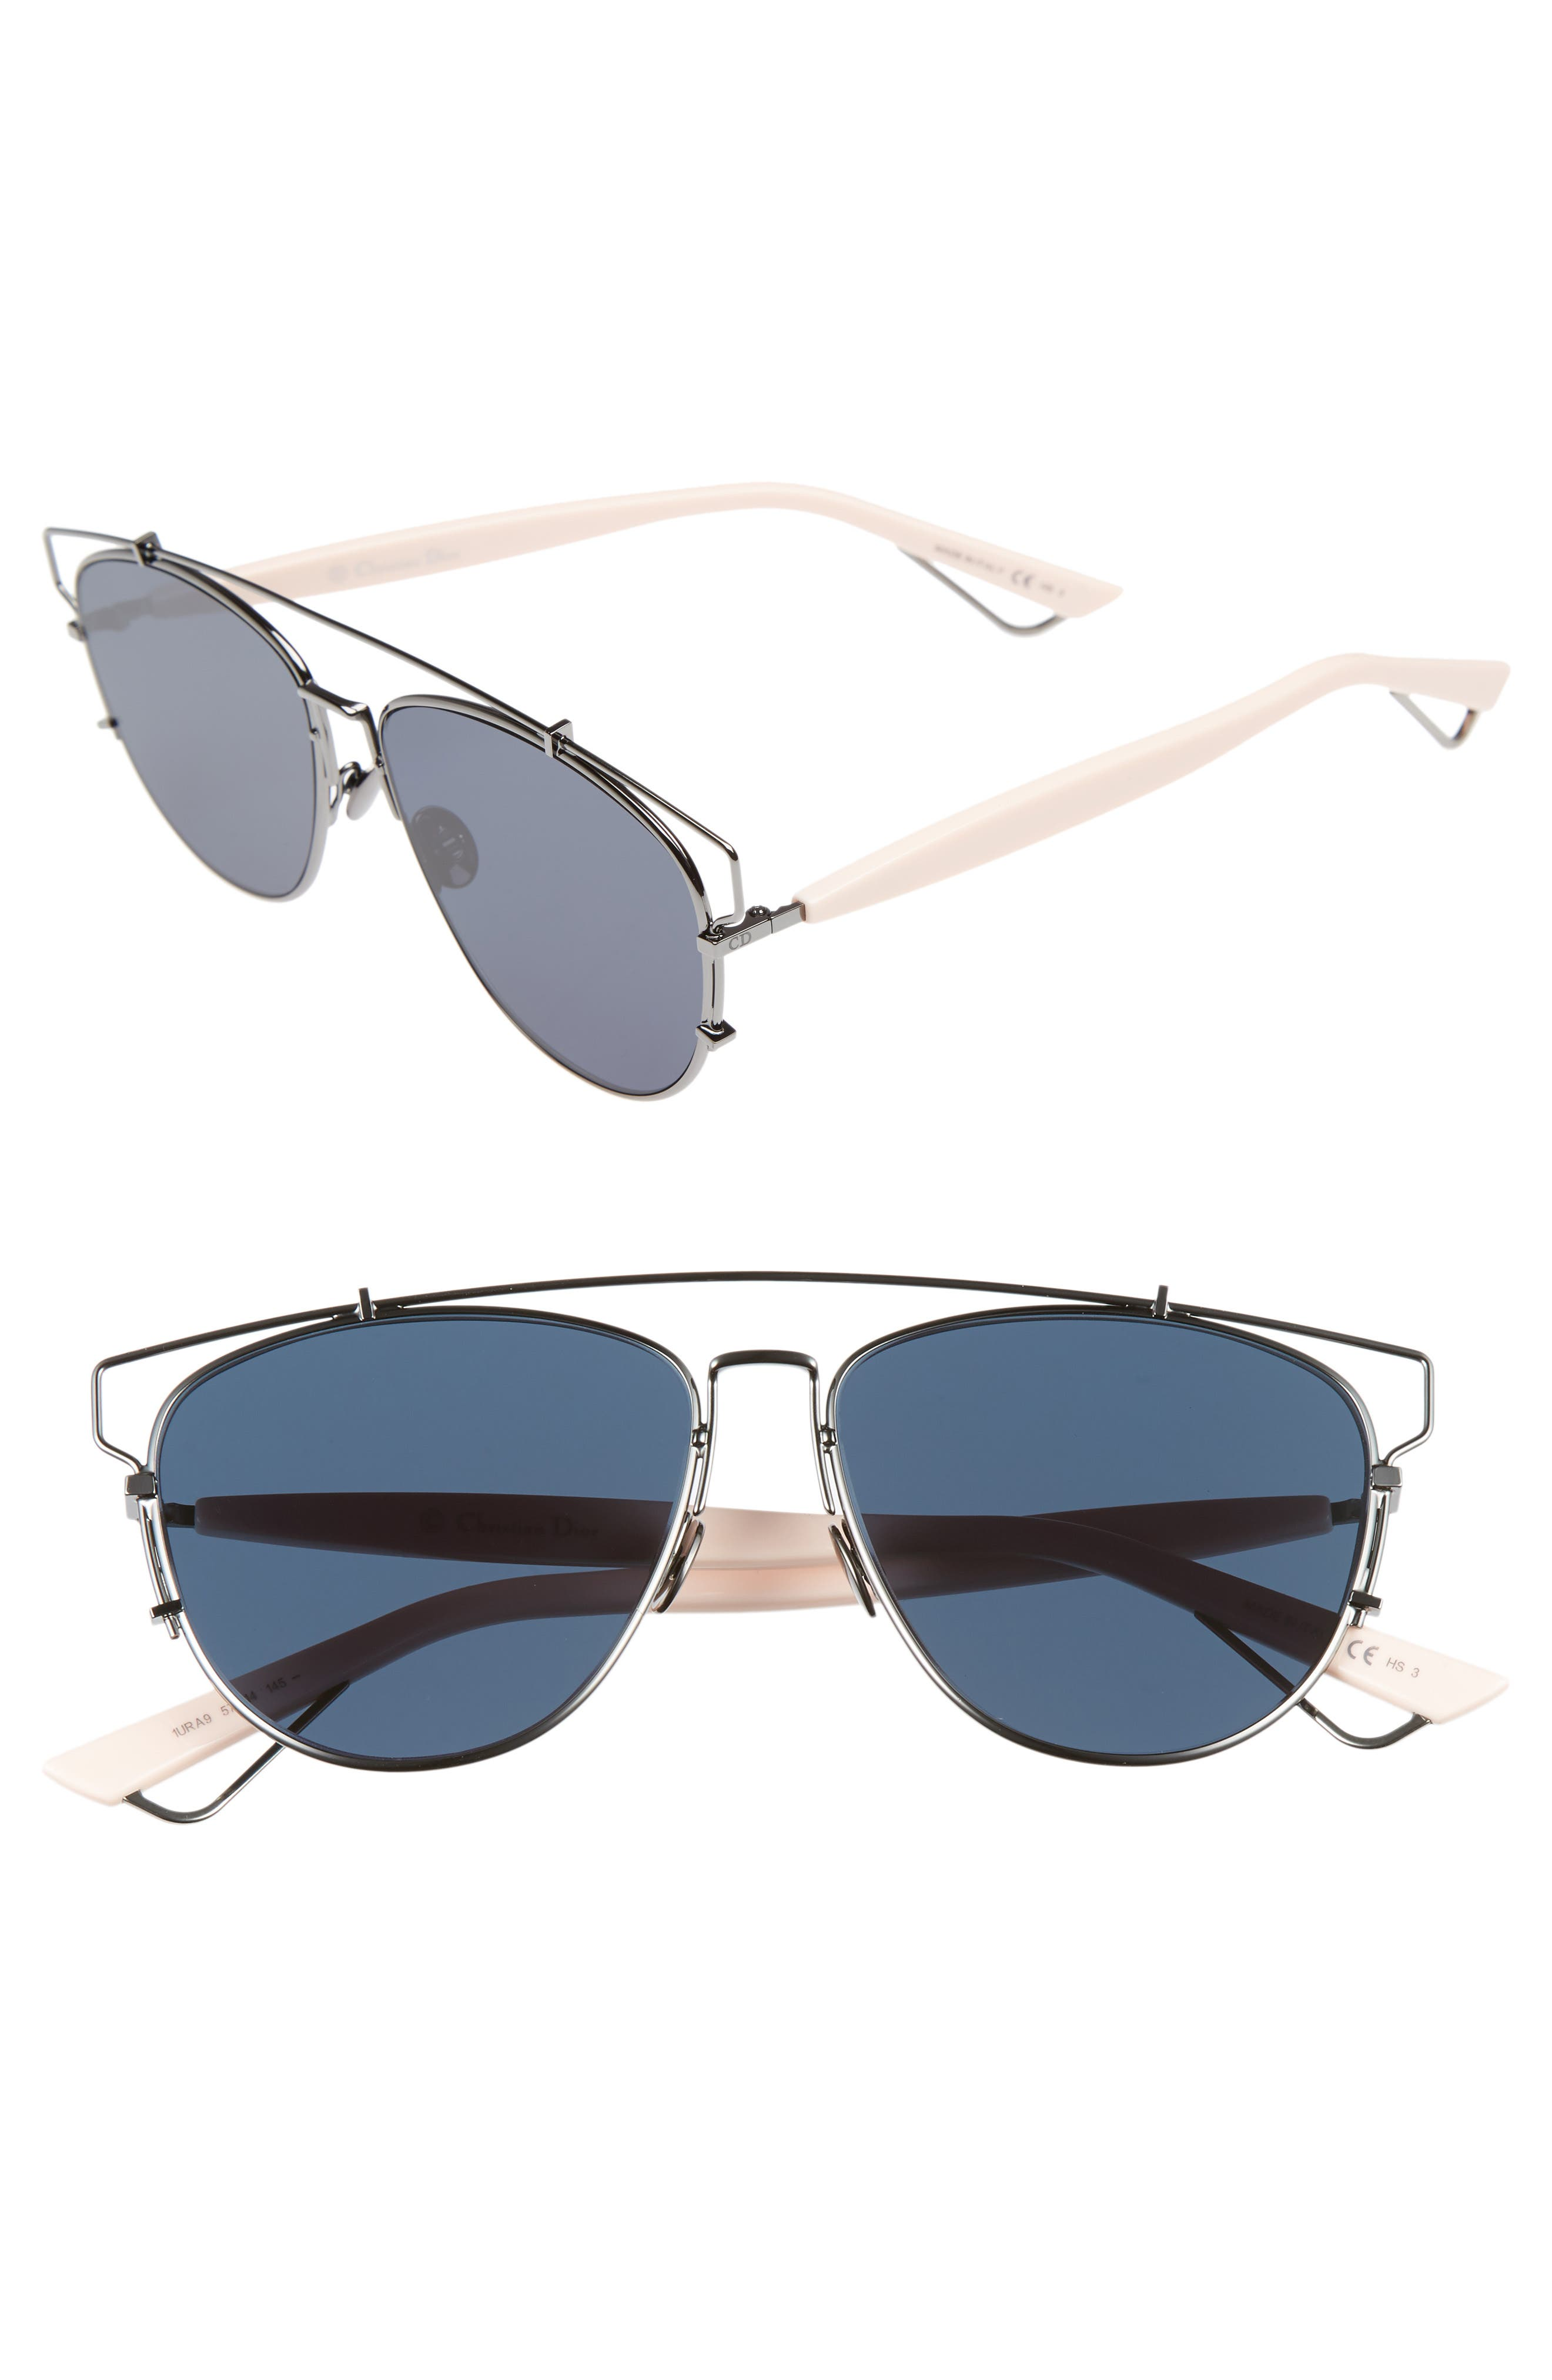 Alternate Image 1 Selected - Dior Technologic 57mm Brow Bar Sunglasses